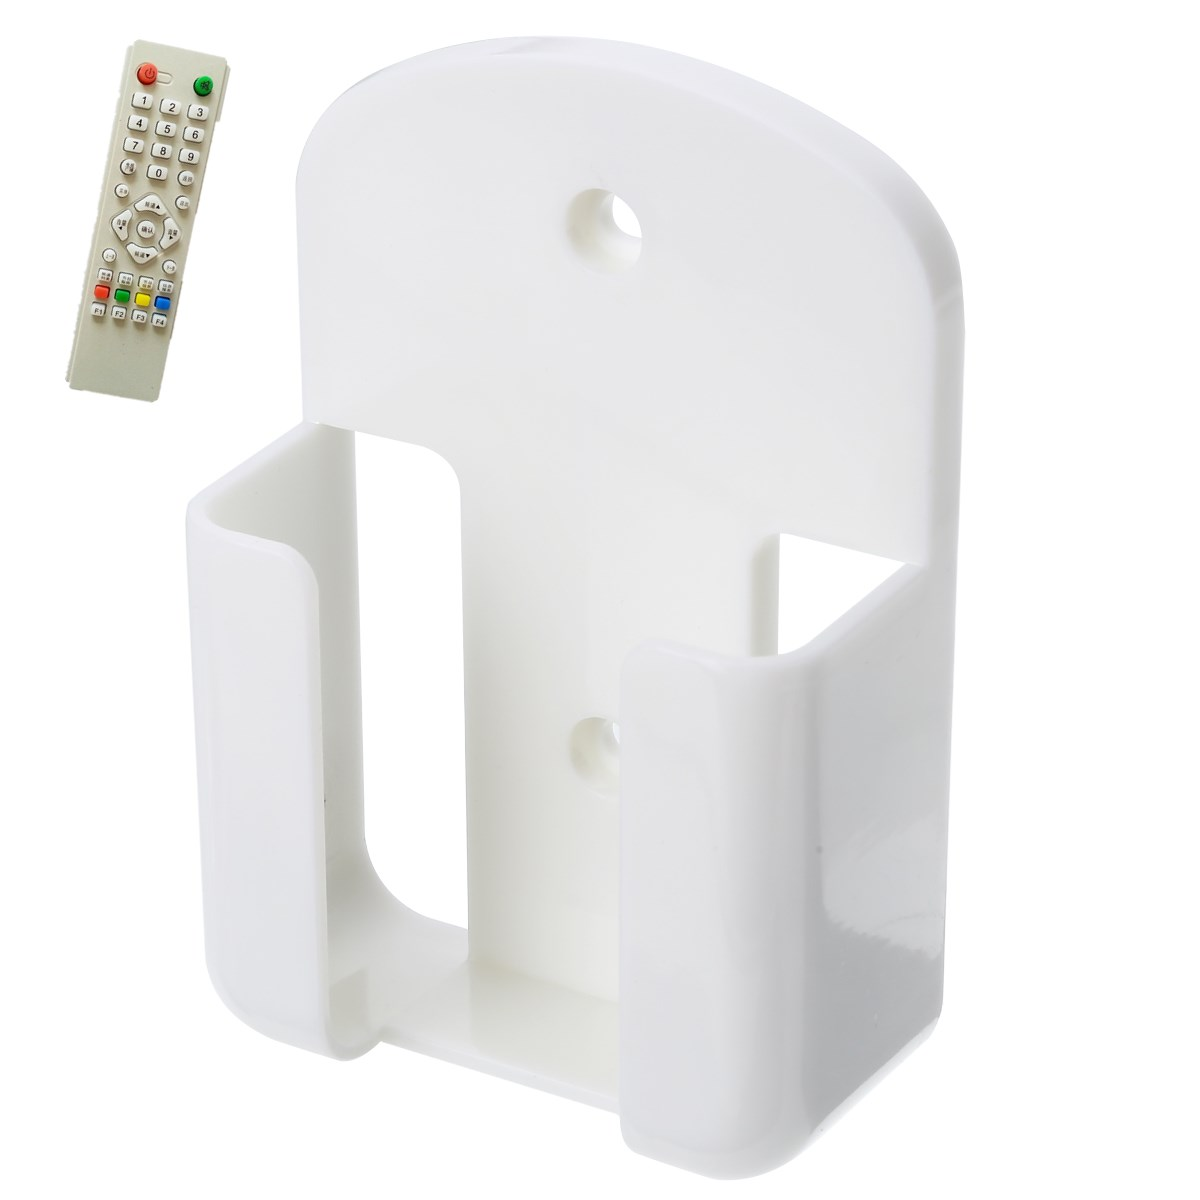 Wall Mounted <font><b>Remote</b></font> Control Storage Holder Box ABS Wall Hanging Box Home Storage Tool image